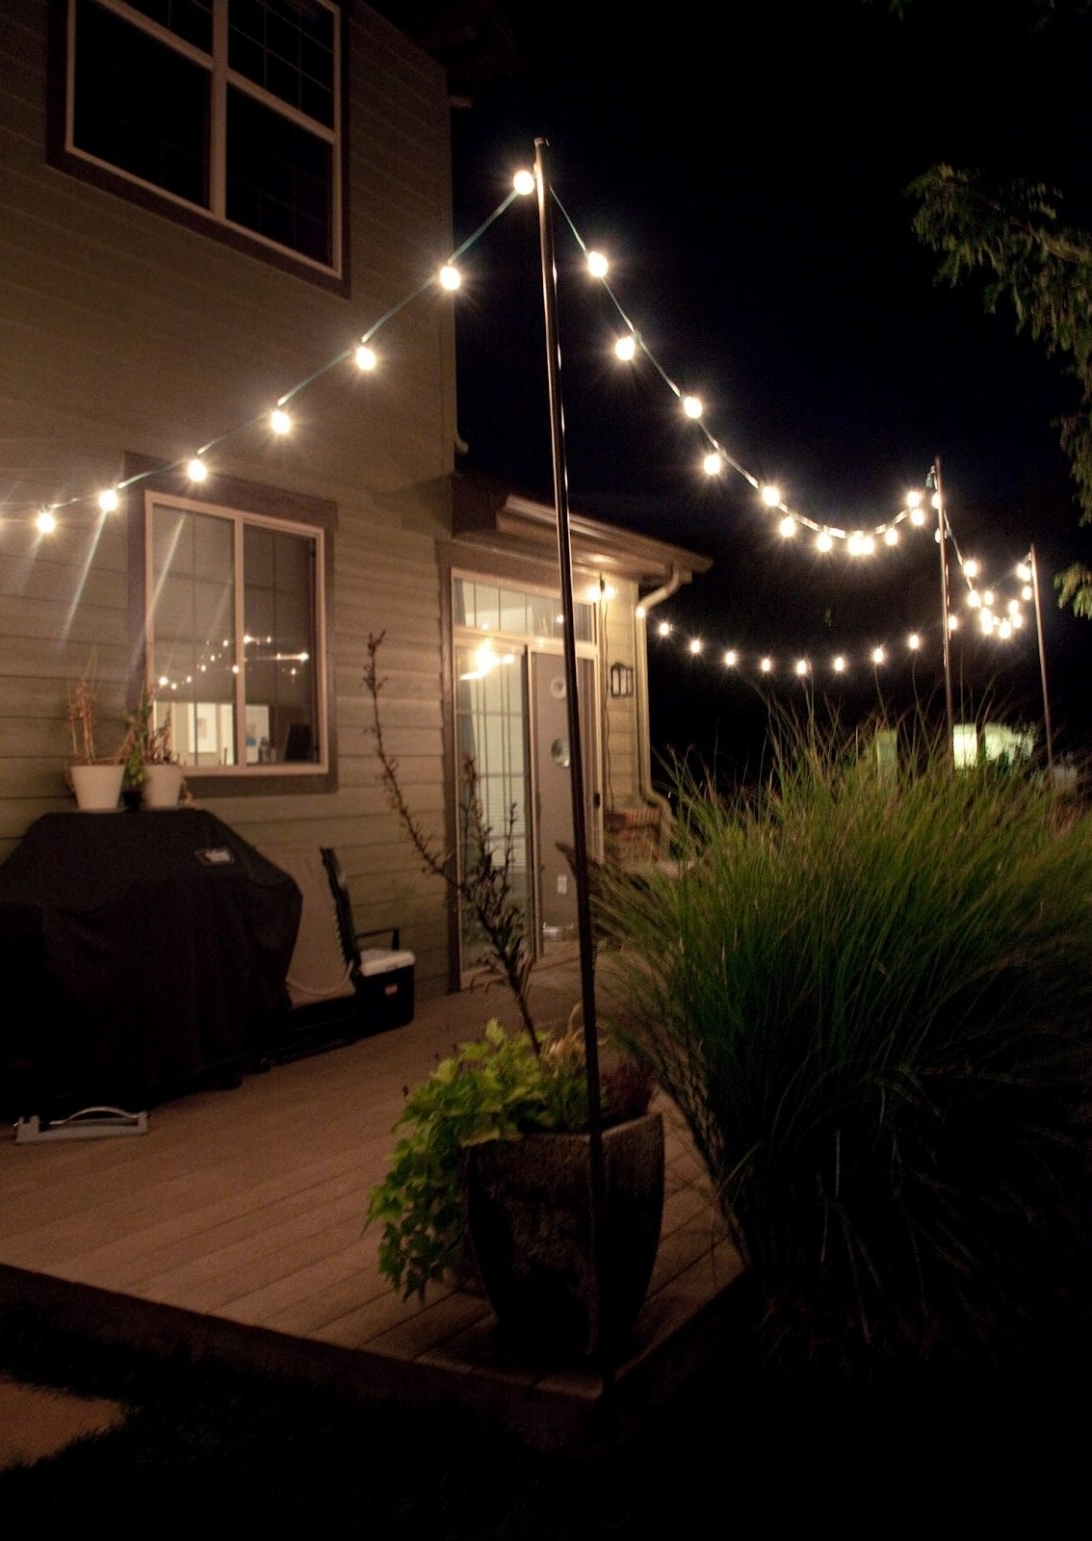 Outdoor Patio String Lighting Ideas Hanging Lights With Colonial With Recent Outdoor Hanging Lanterns For Patio (View 18 of 20)